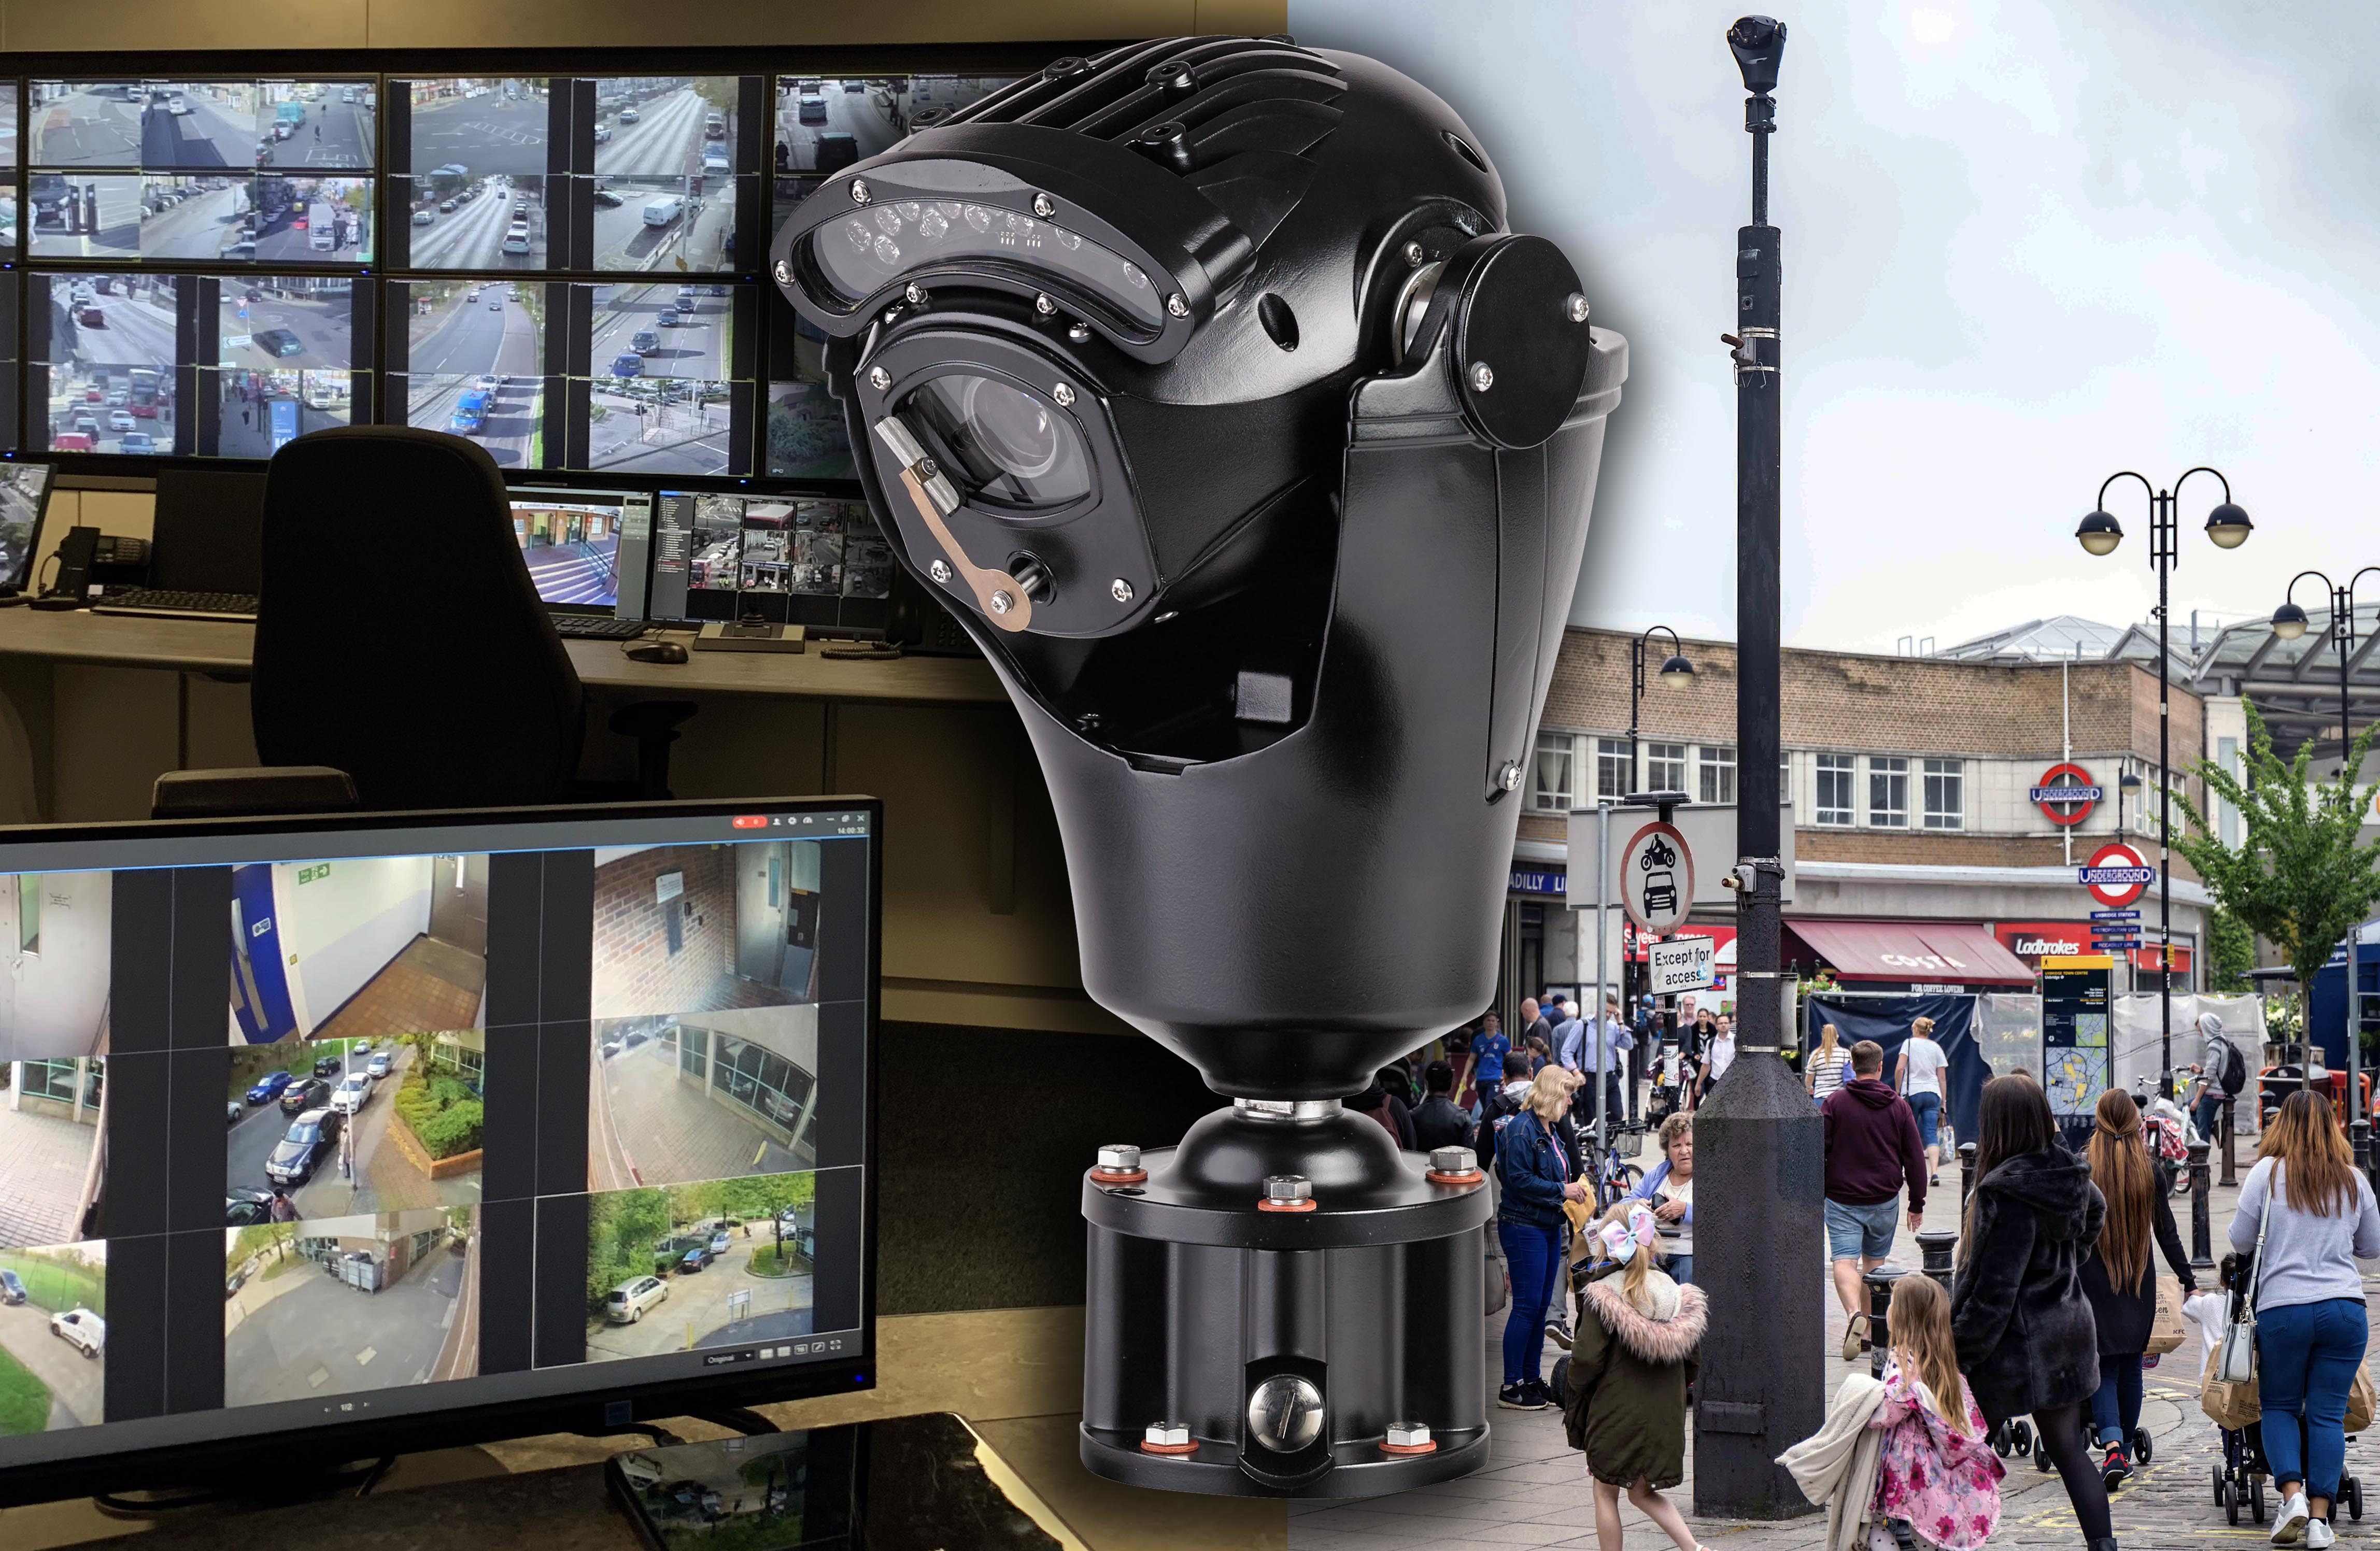 Risk UK Multiple Invictus PTZ cameras deployed by DSSL Group across